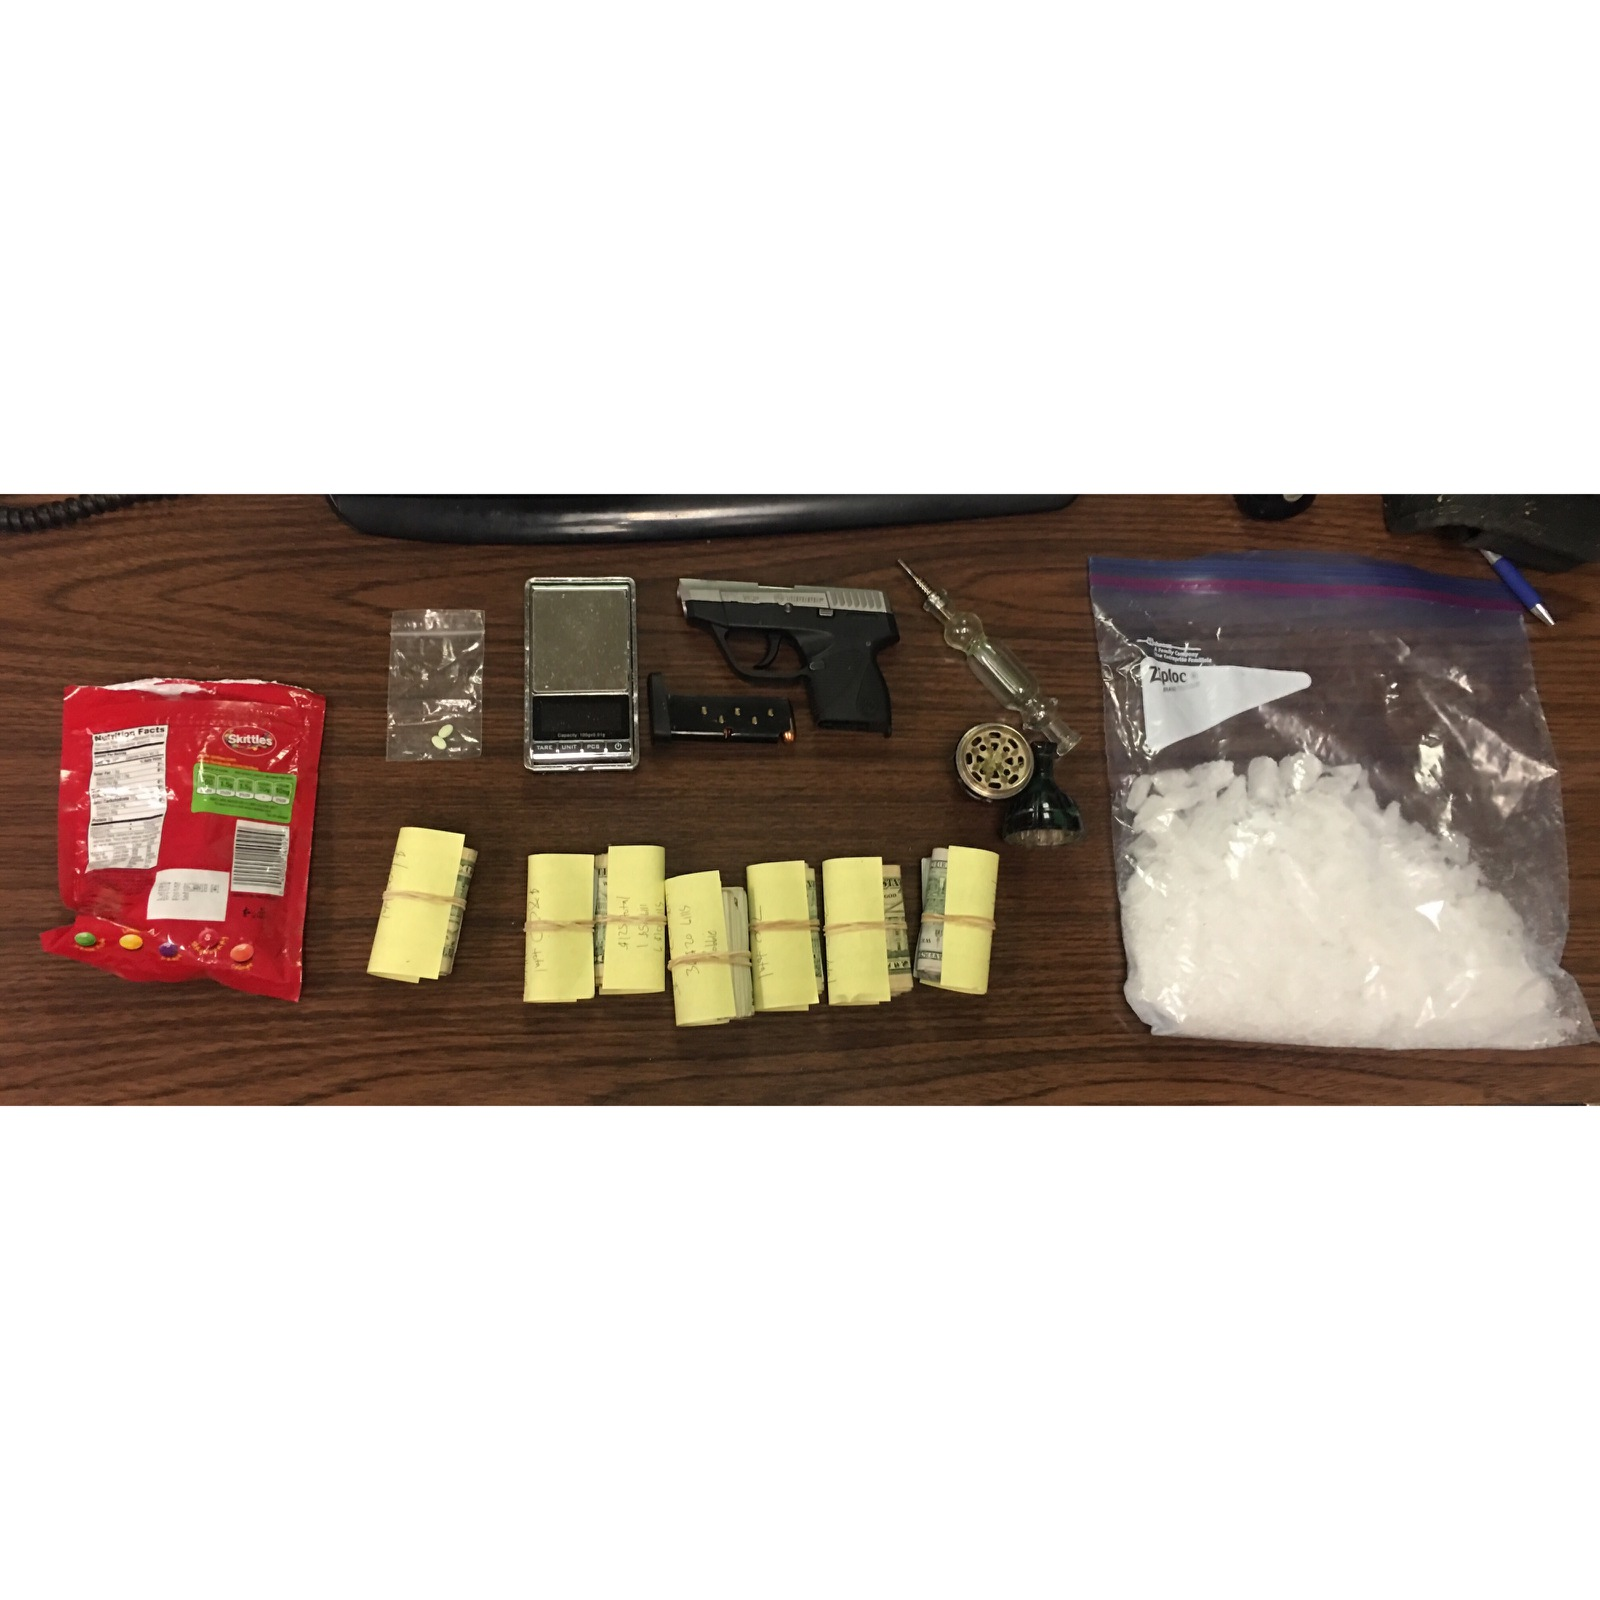 Large amounts of meth and cash seized in Henry County